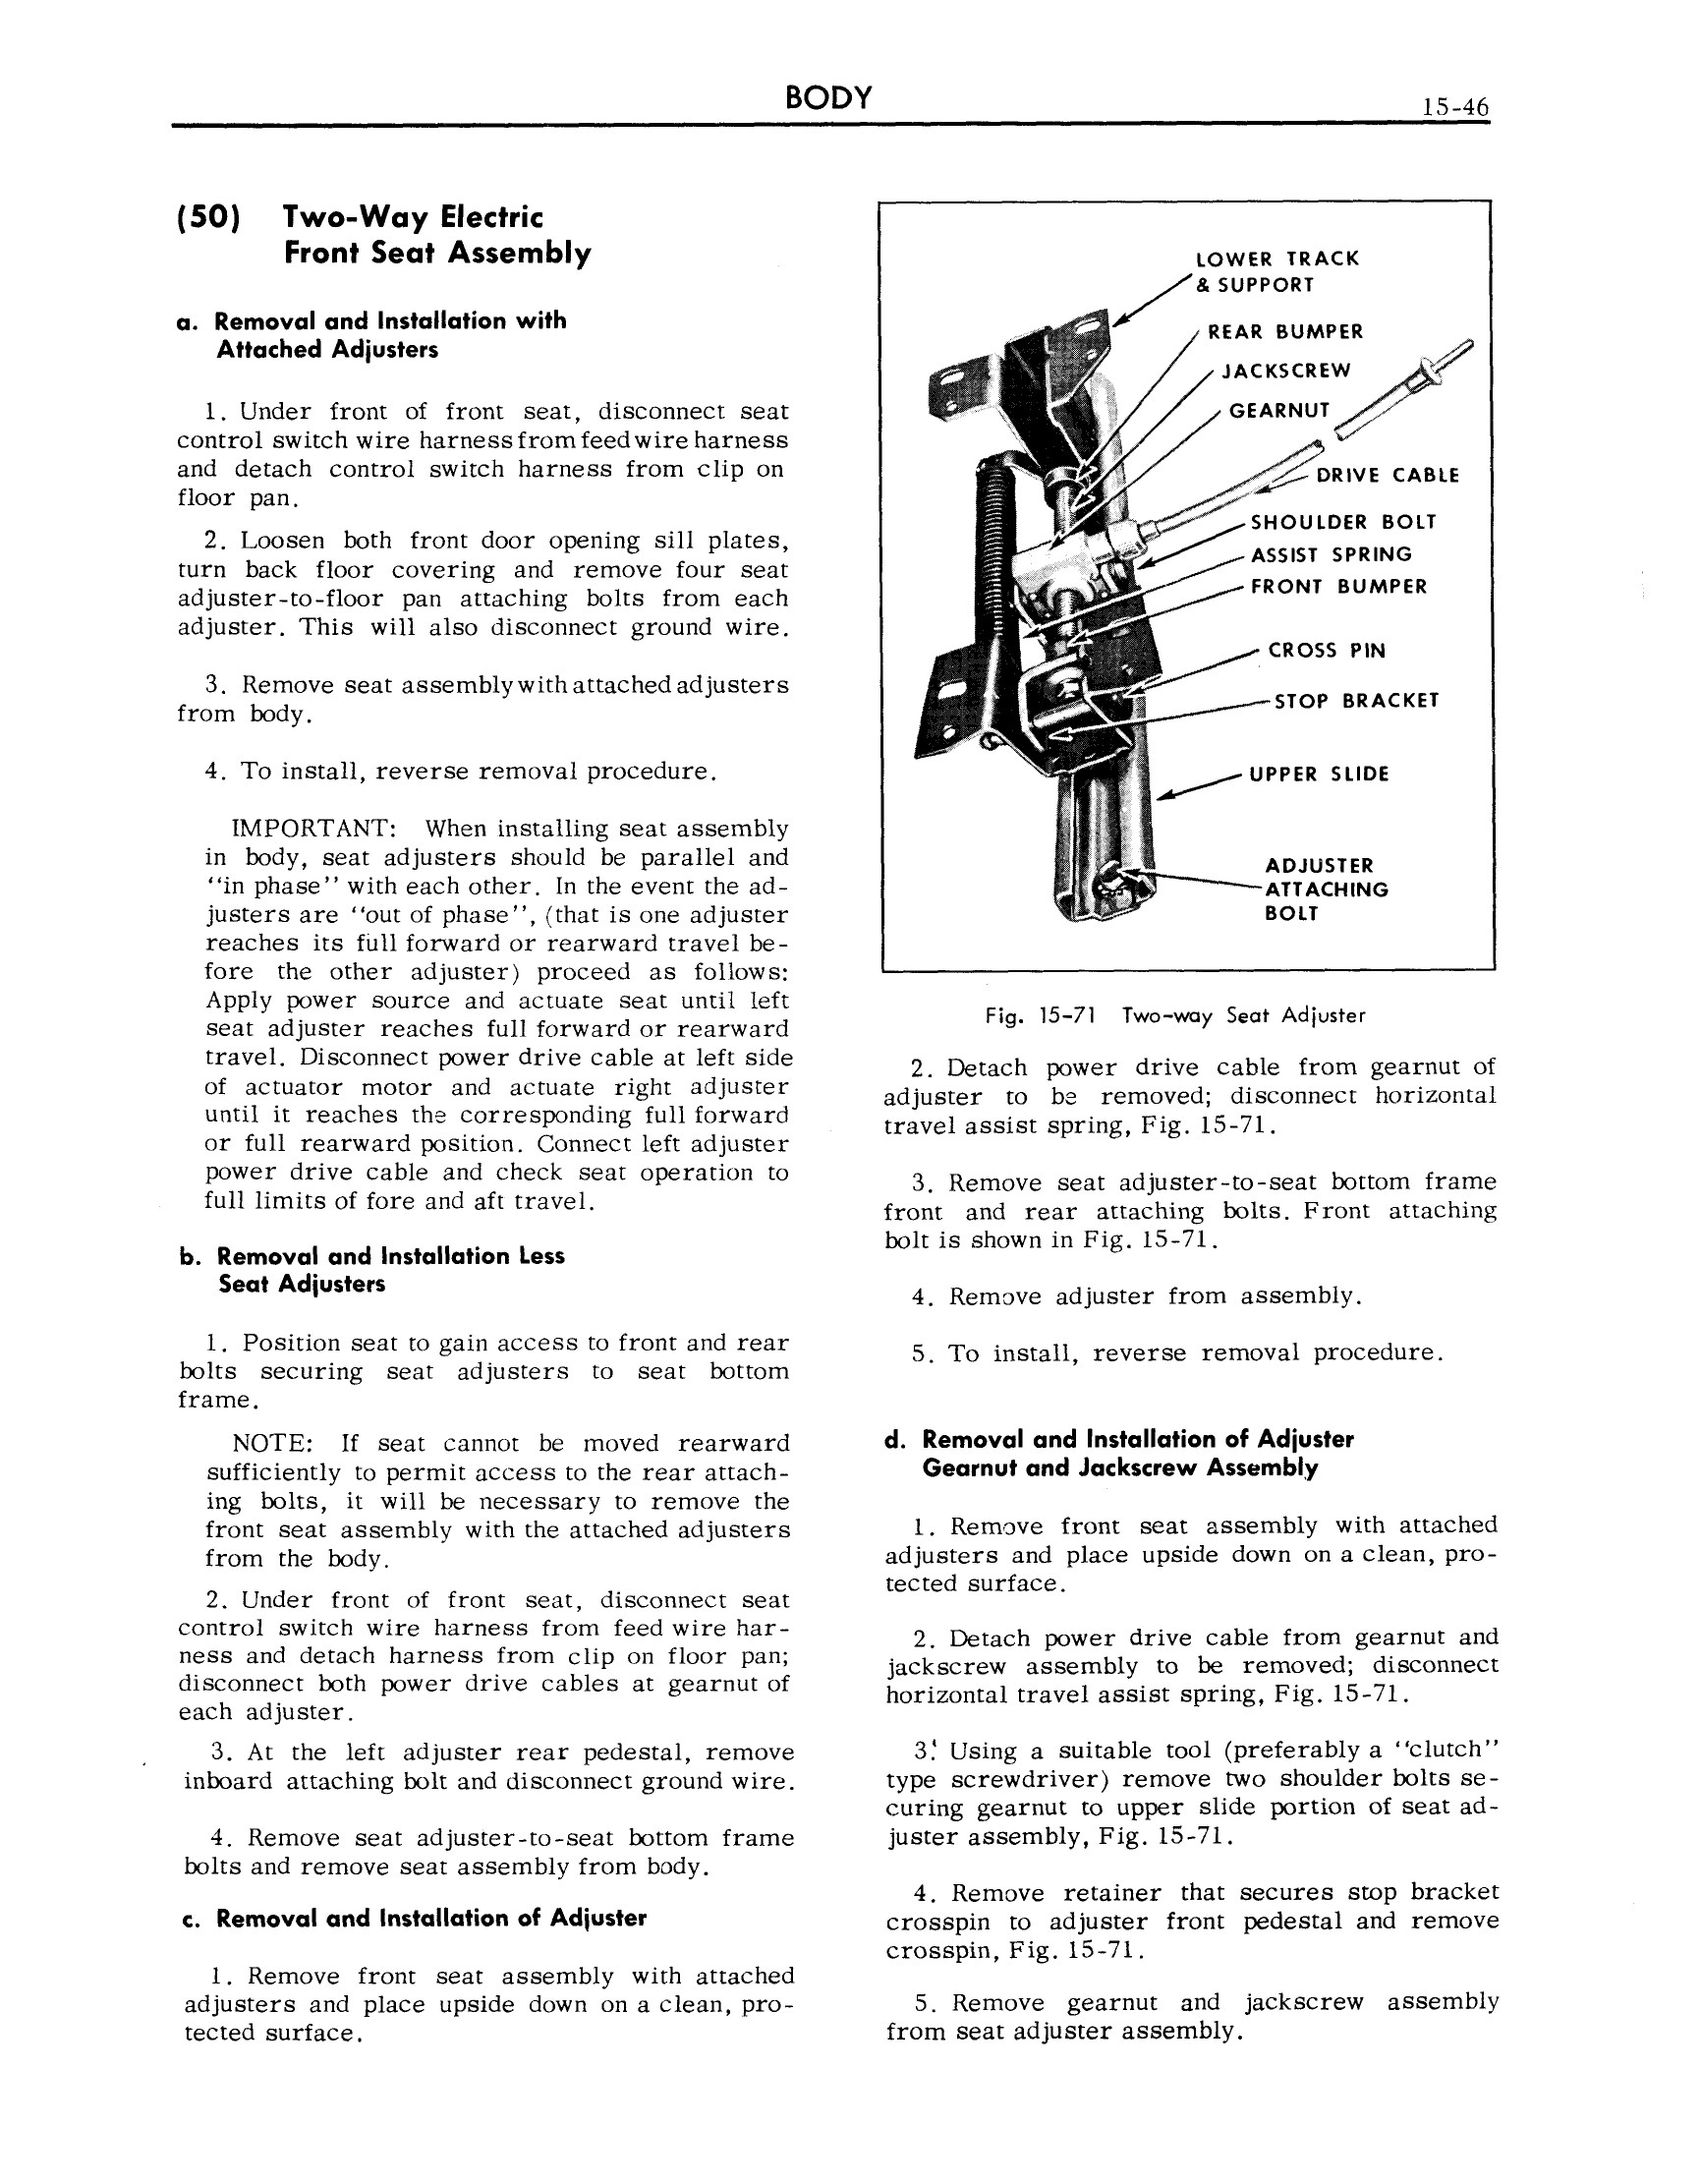 1959 Cadillac Shop Manual- Body Page 46 of 99